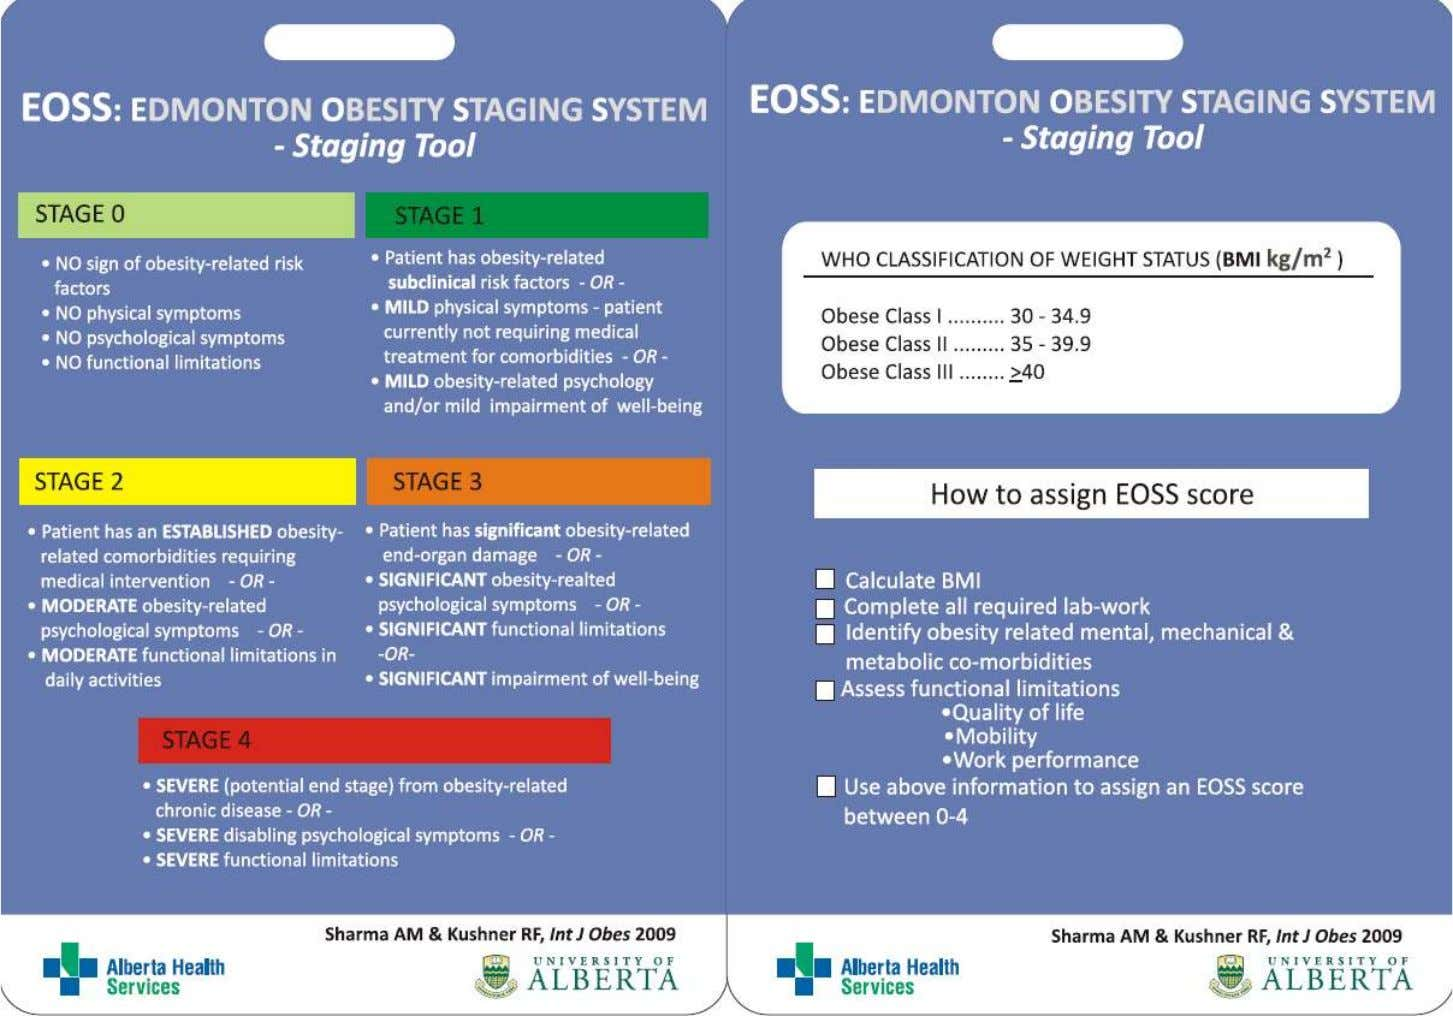 25 http://www.drsharma.ca/wp-content/uploads/edmonton-obesity-staging-system-pocket-card.pdf